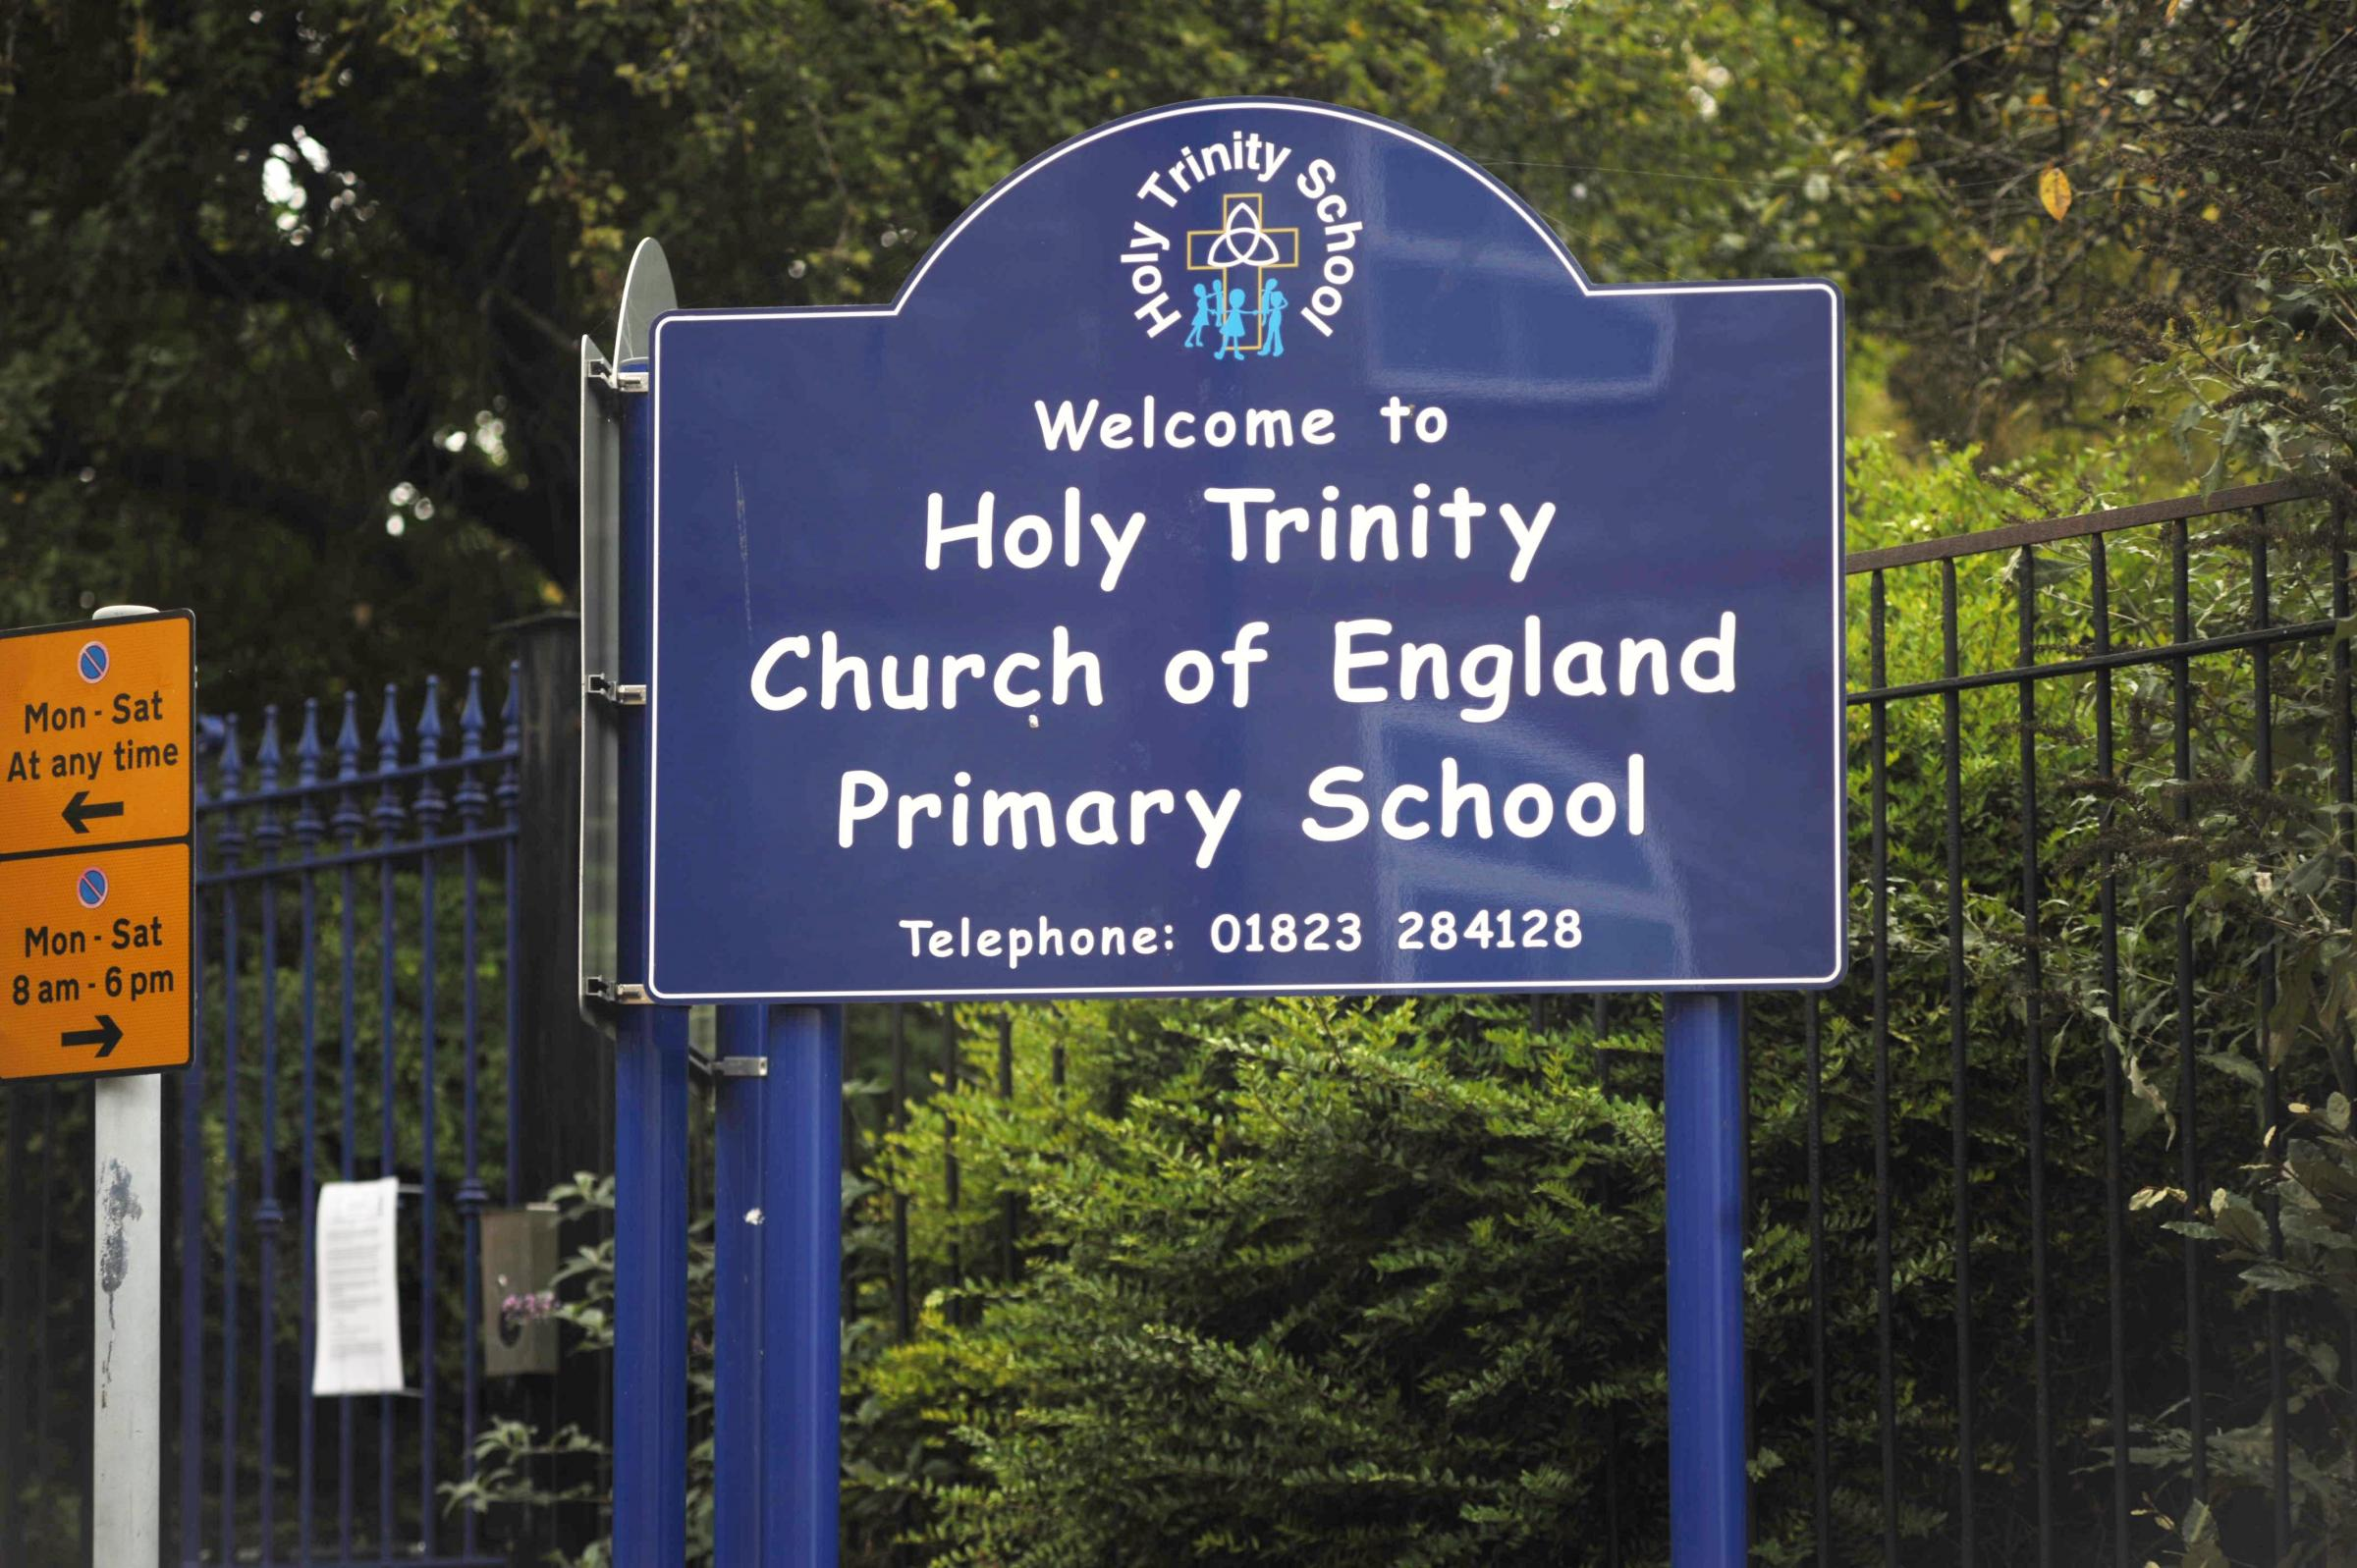 £1million to build new classrooms at Taunton's Holy Trinity School